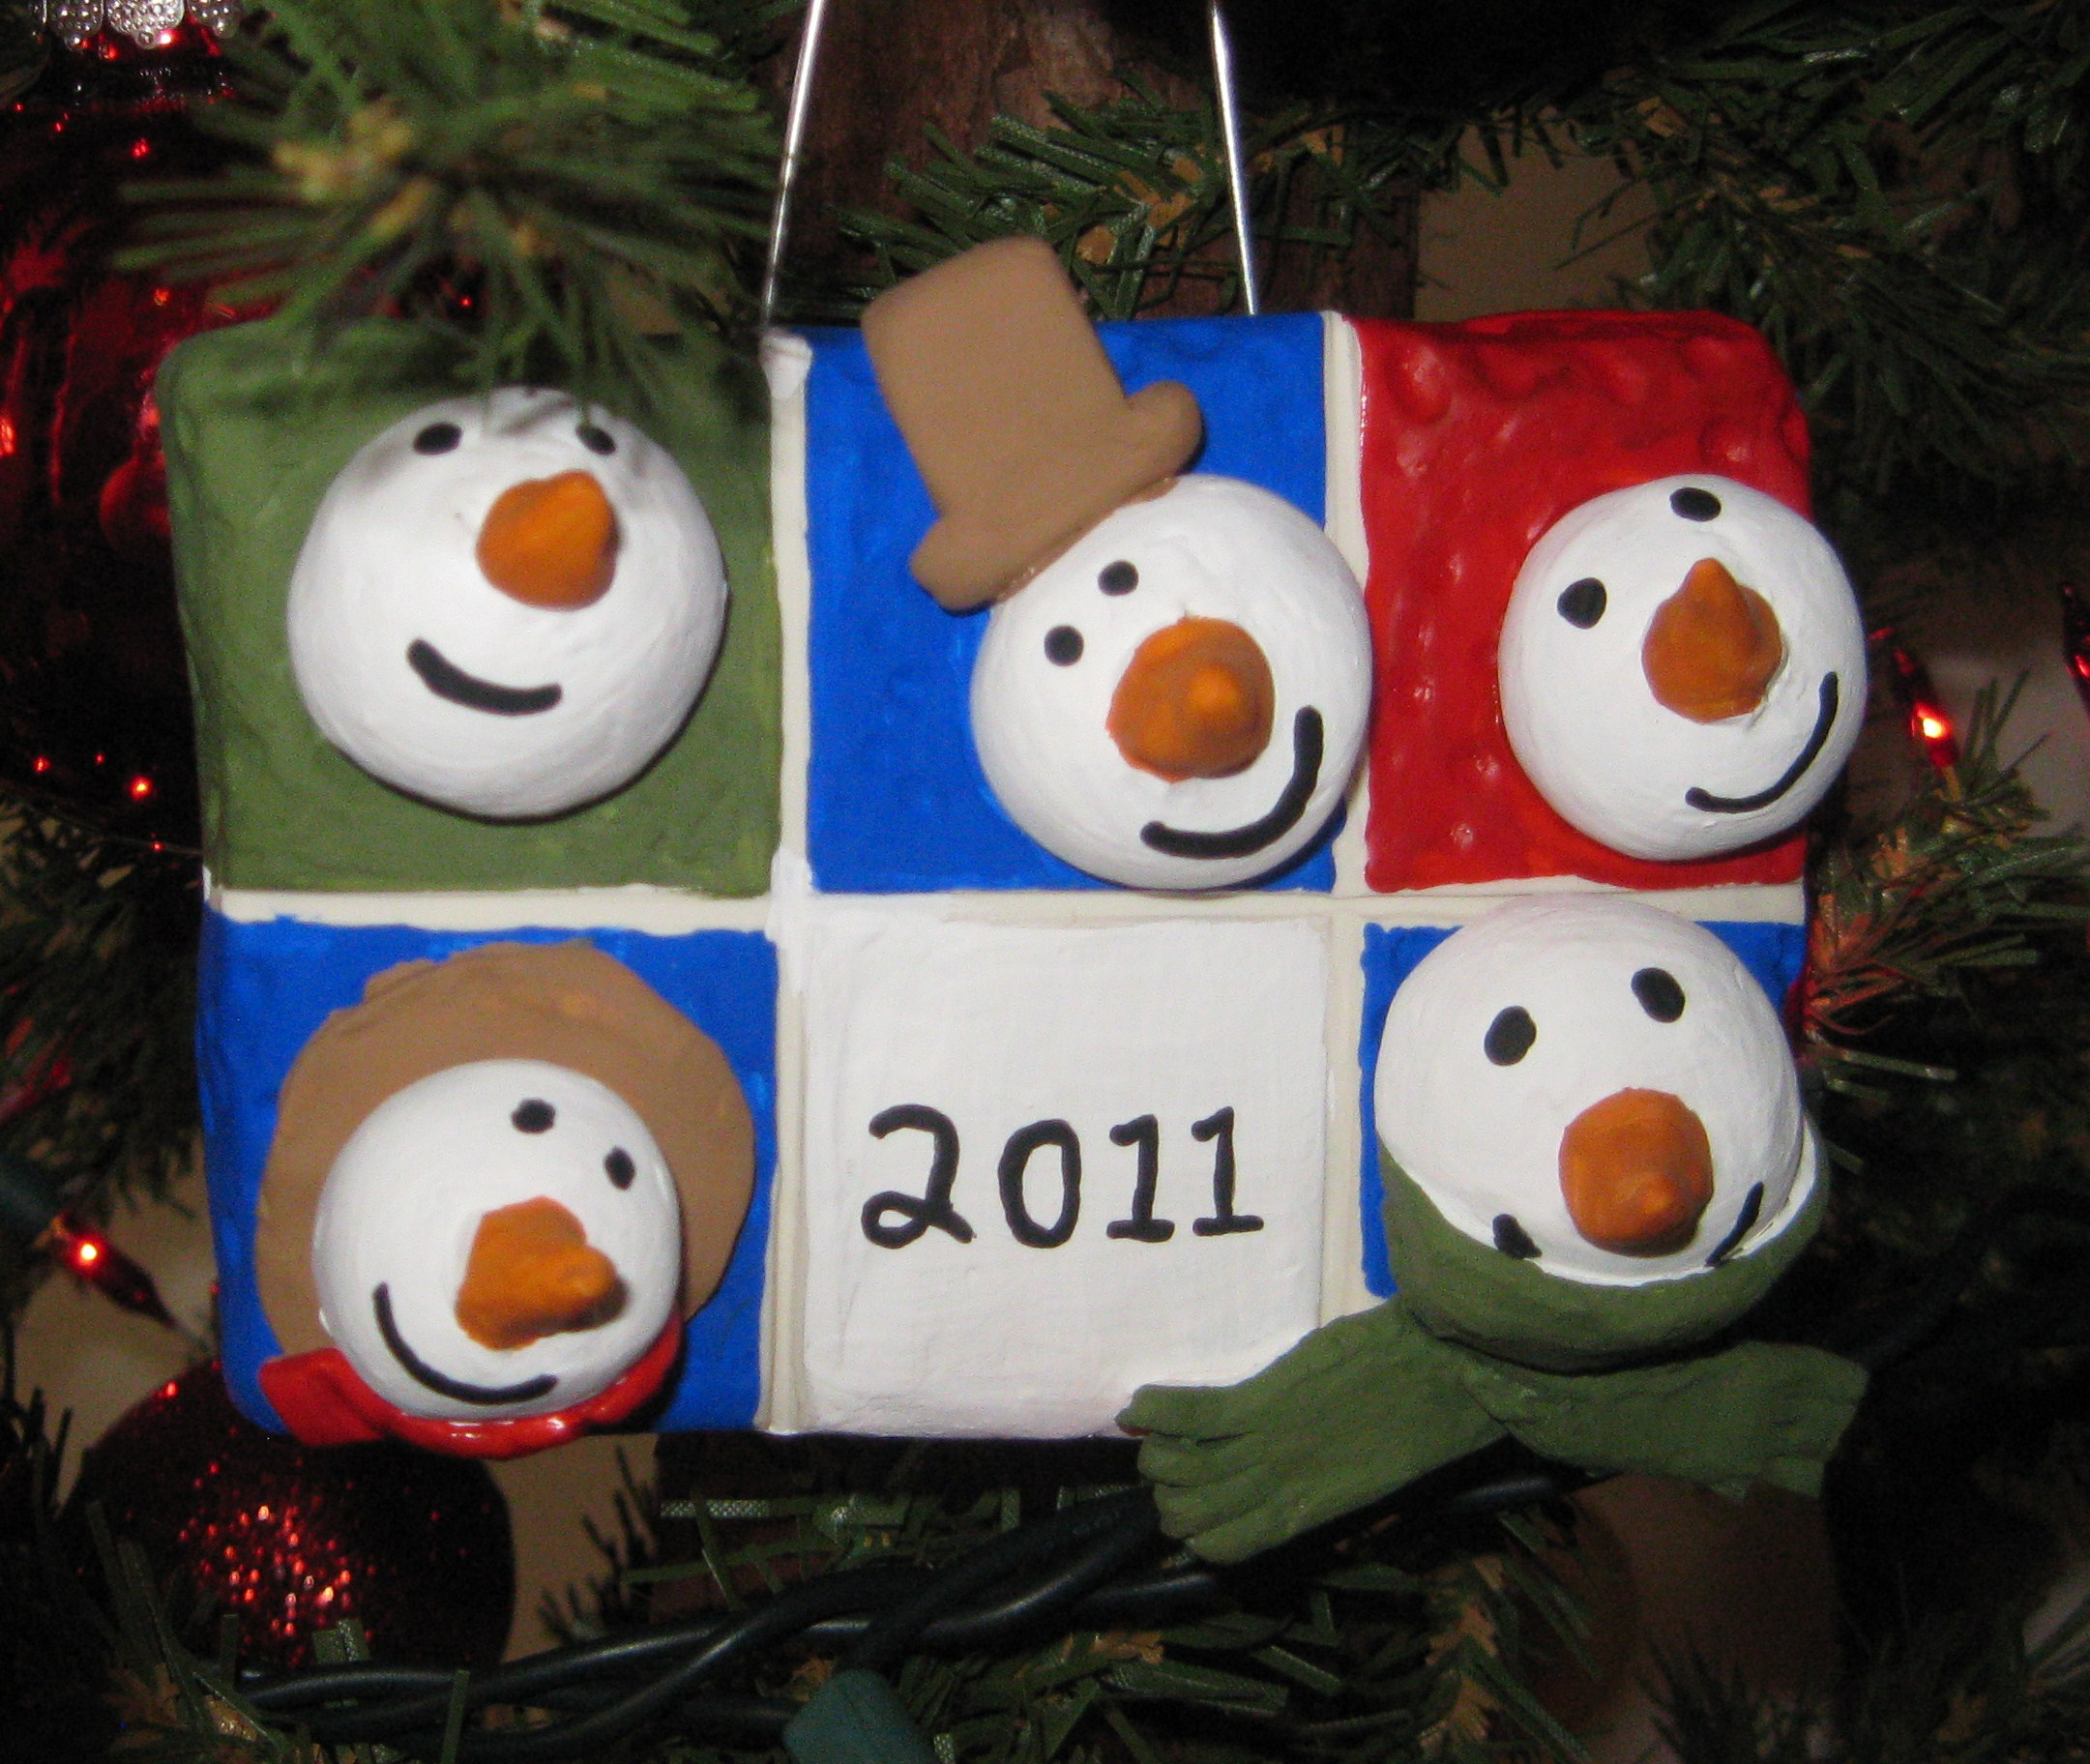 Sculpey Oven Baked Clay Projects Snowman Plaque (1) For The Base We Cut A  3″x4″ Rectangle From White Foam Board We Covered It With A Thin Layer Of  The